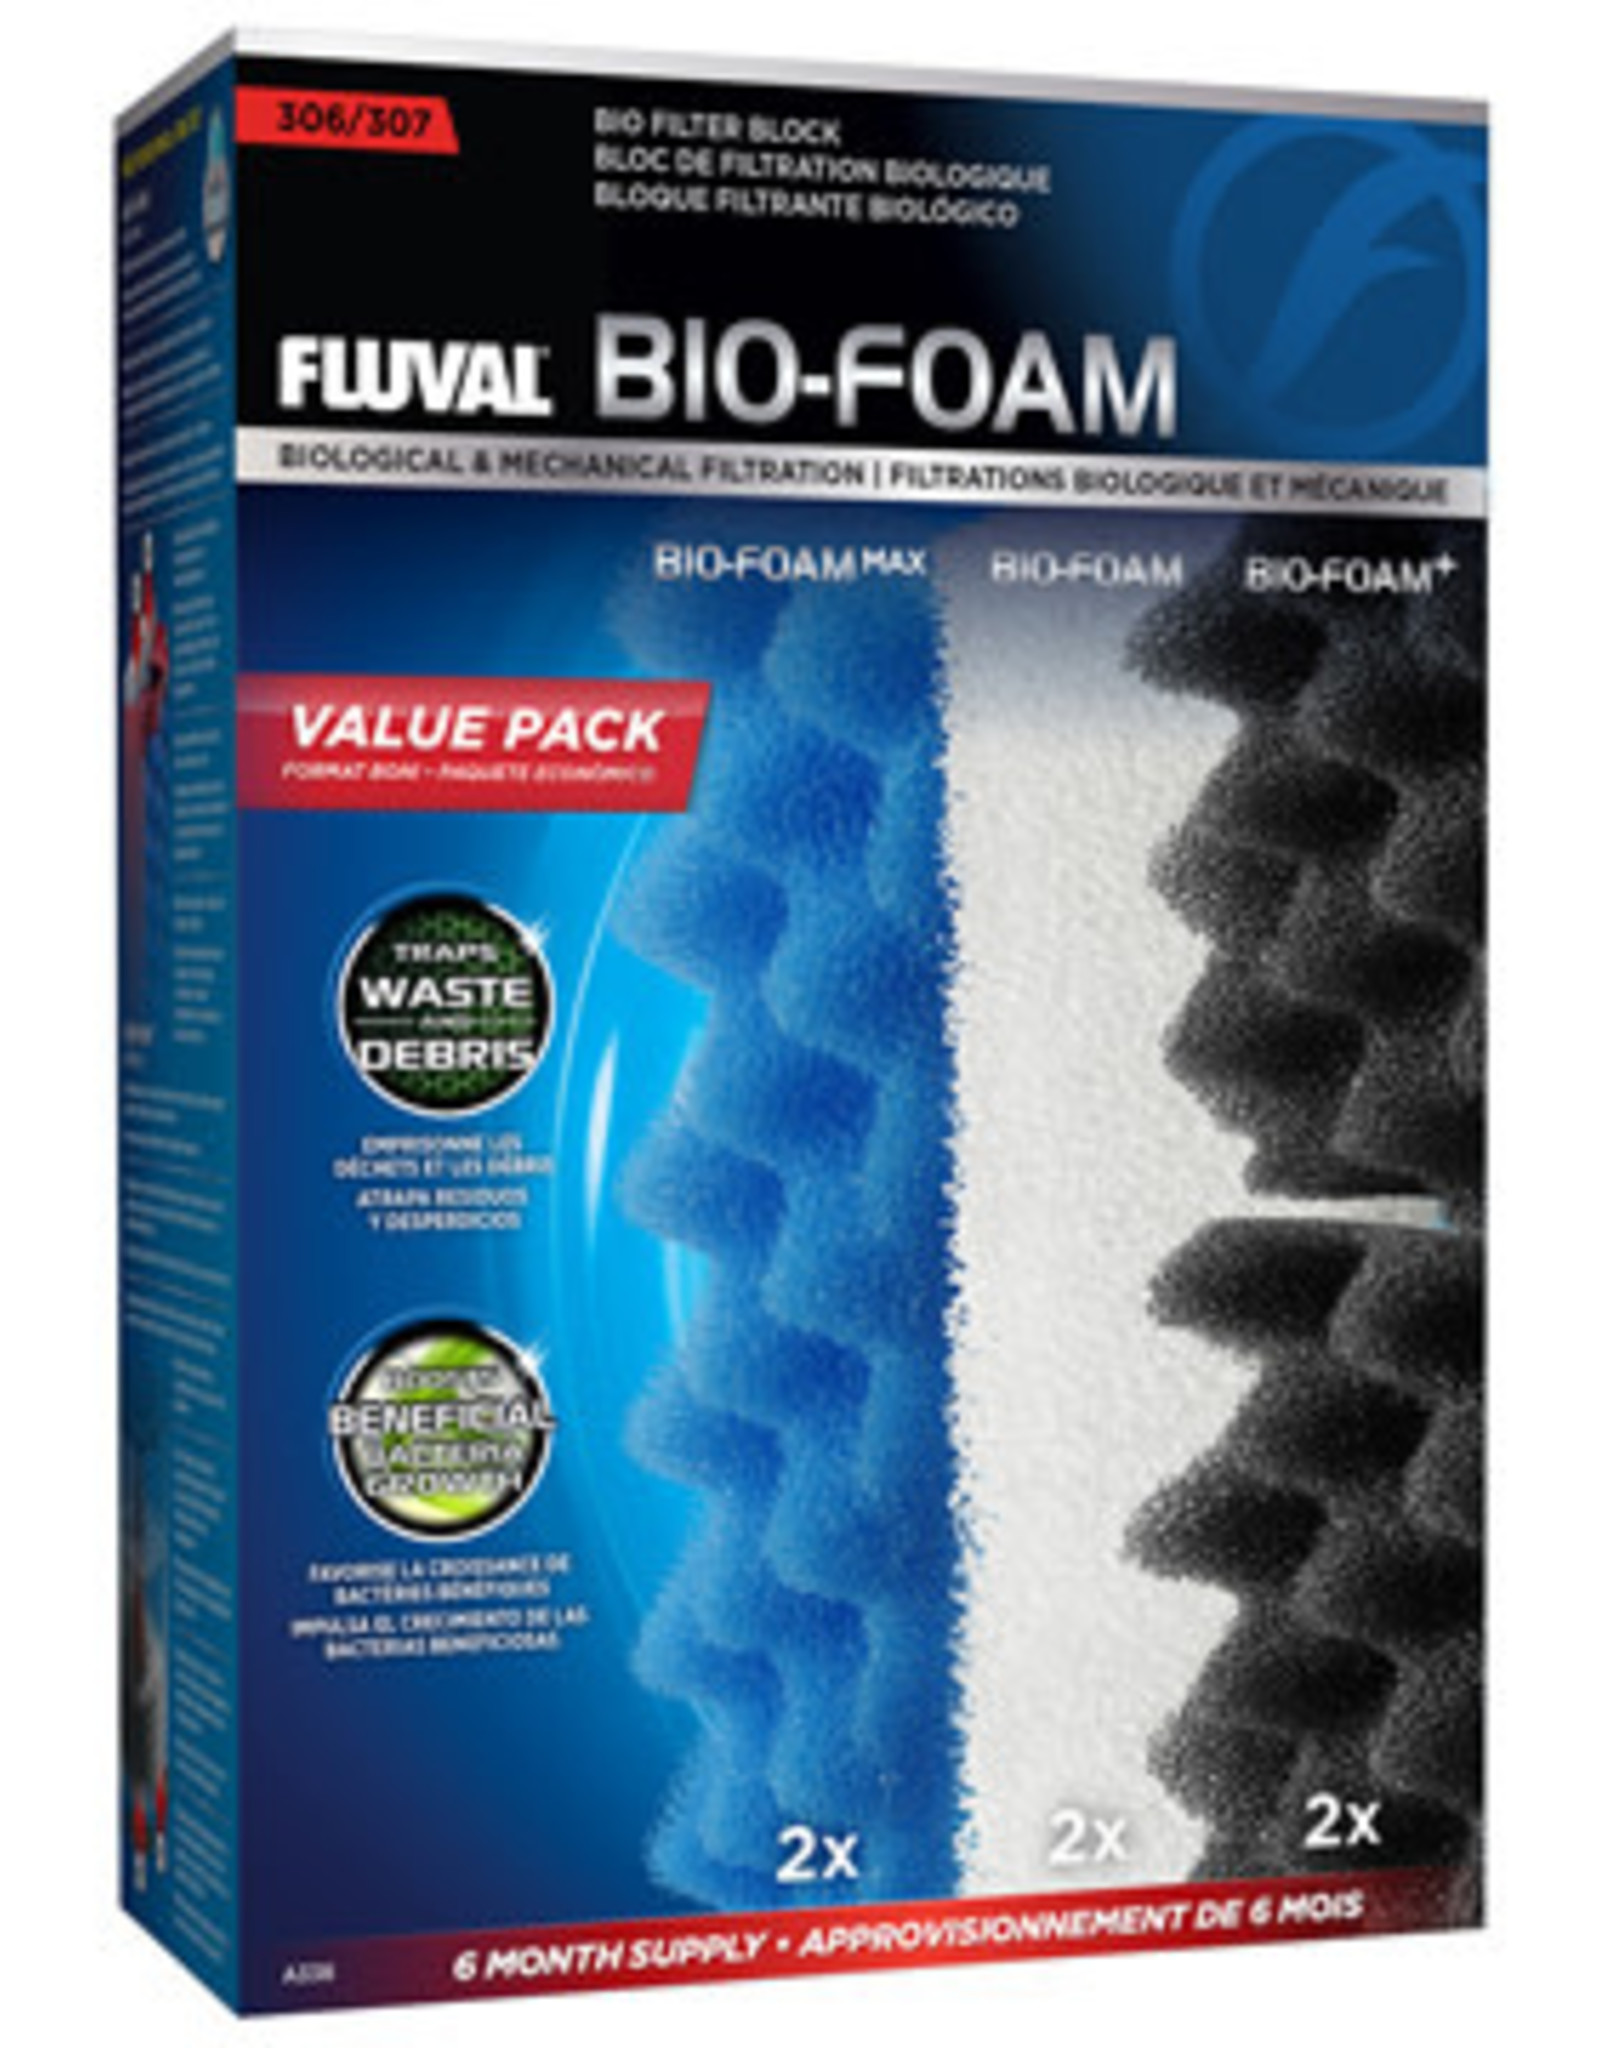 Fluval Fluval 207 Bio-Foam Value Pack